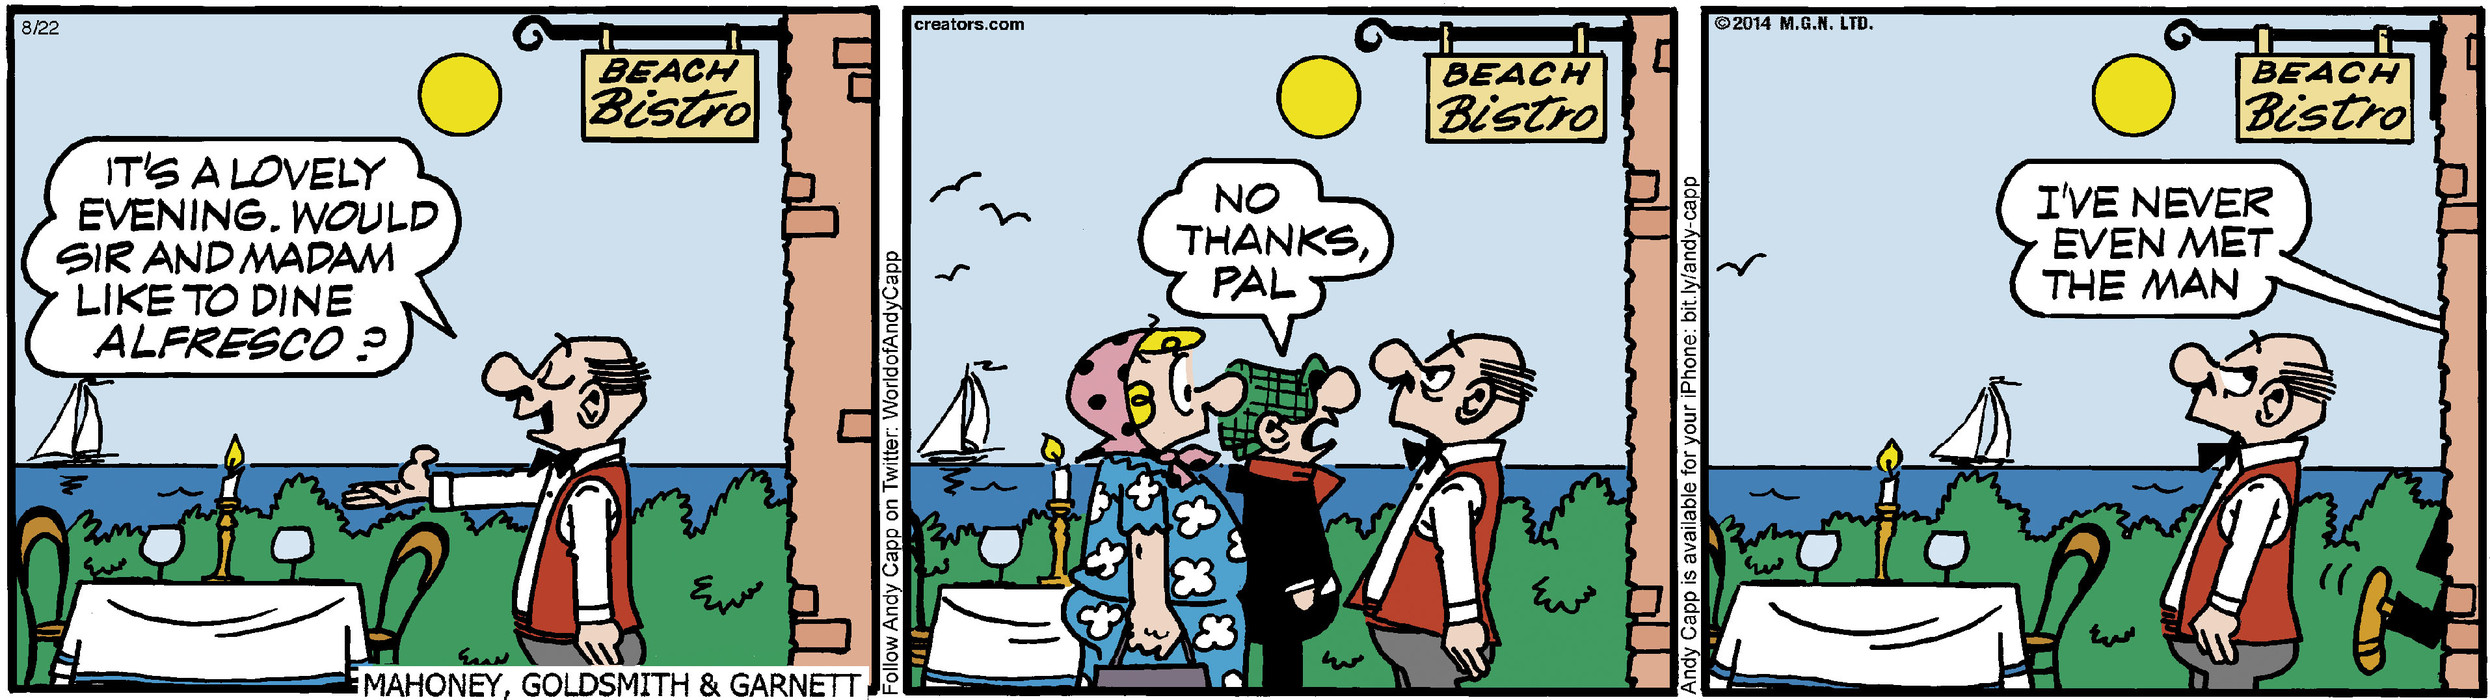 Andy Capp for Aug 22, 2014